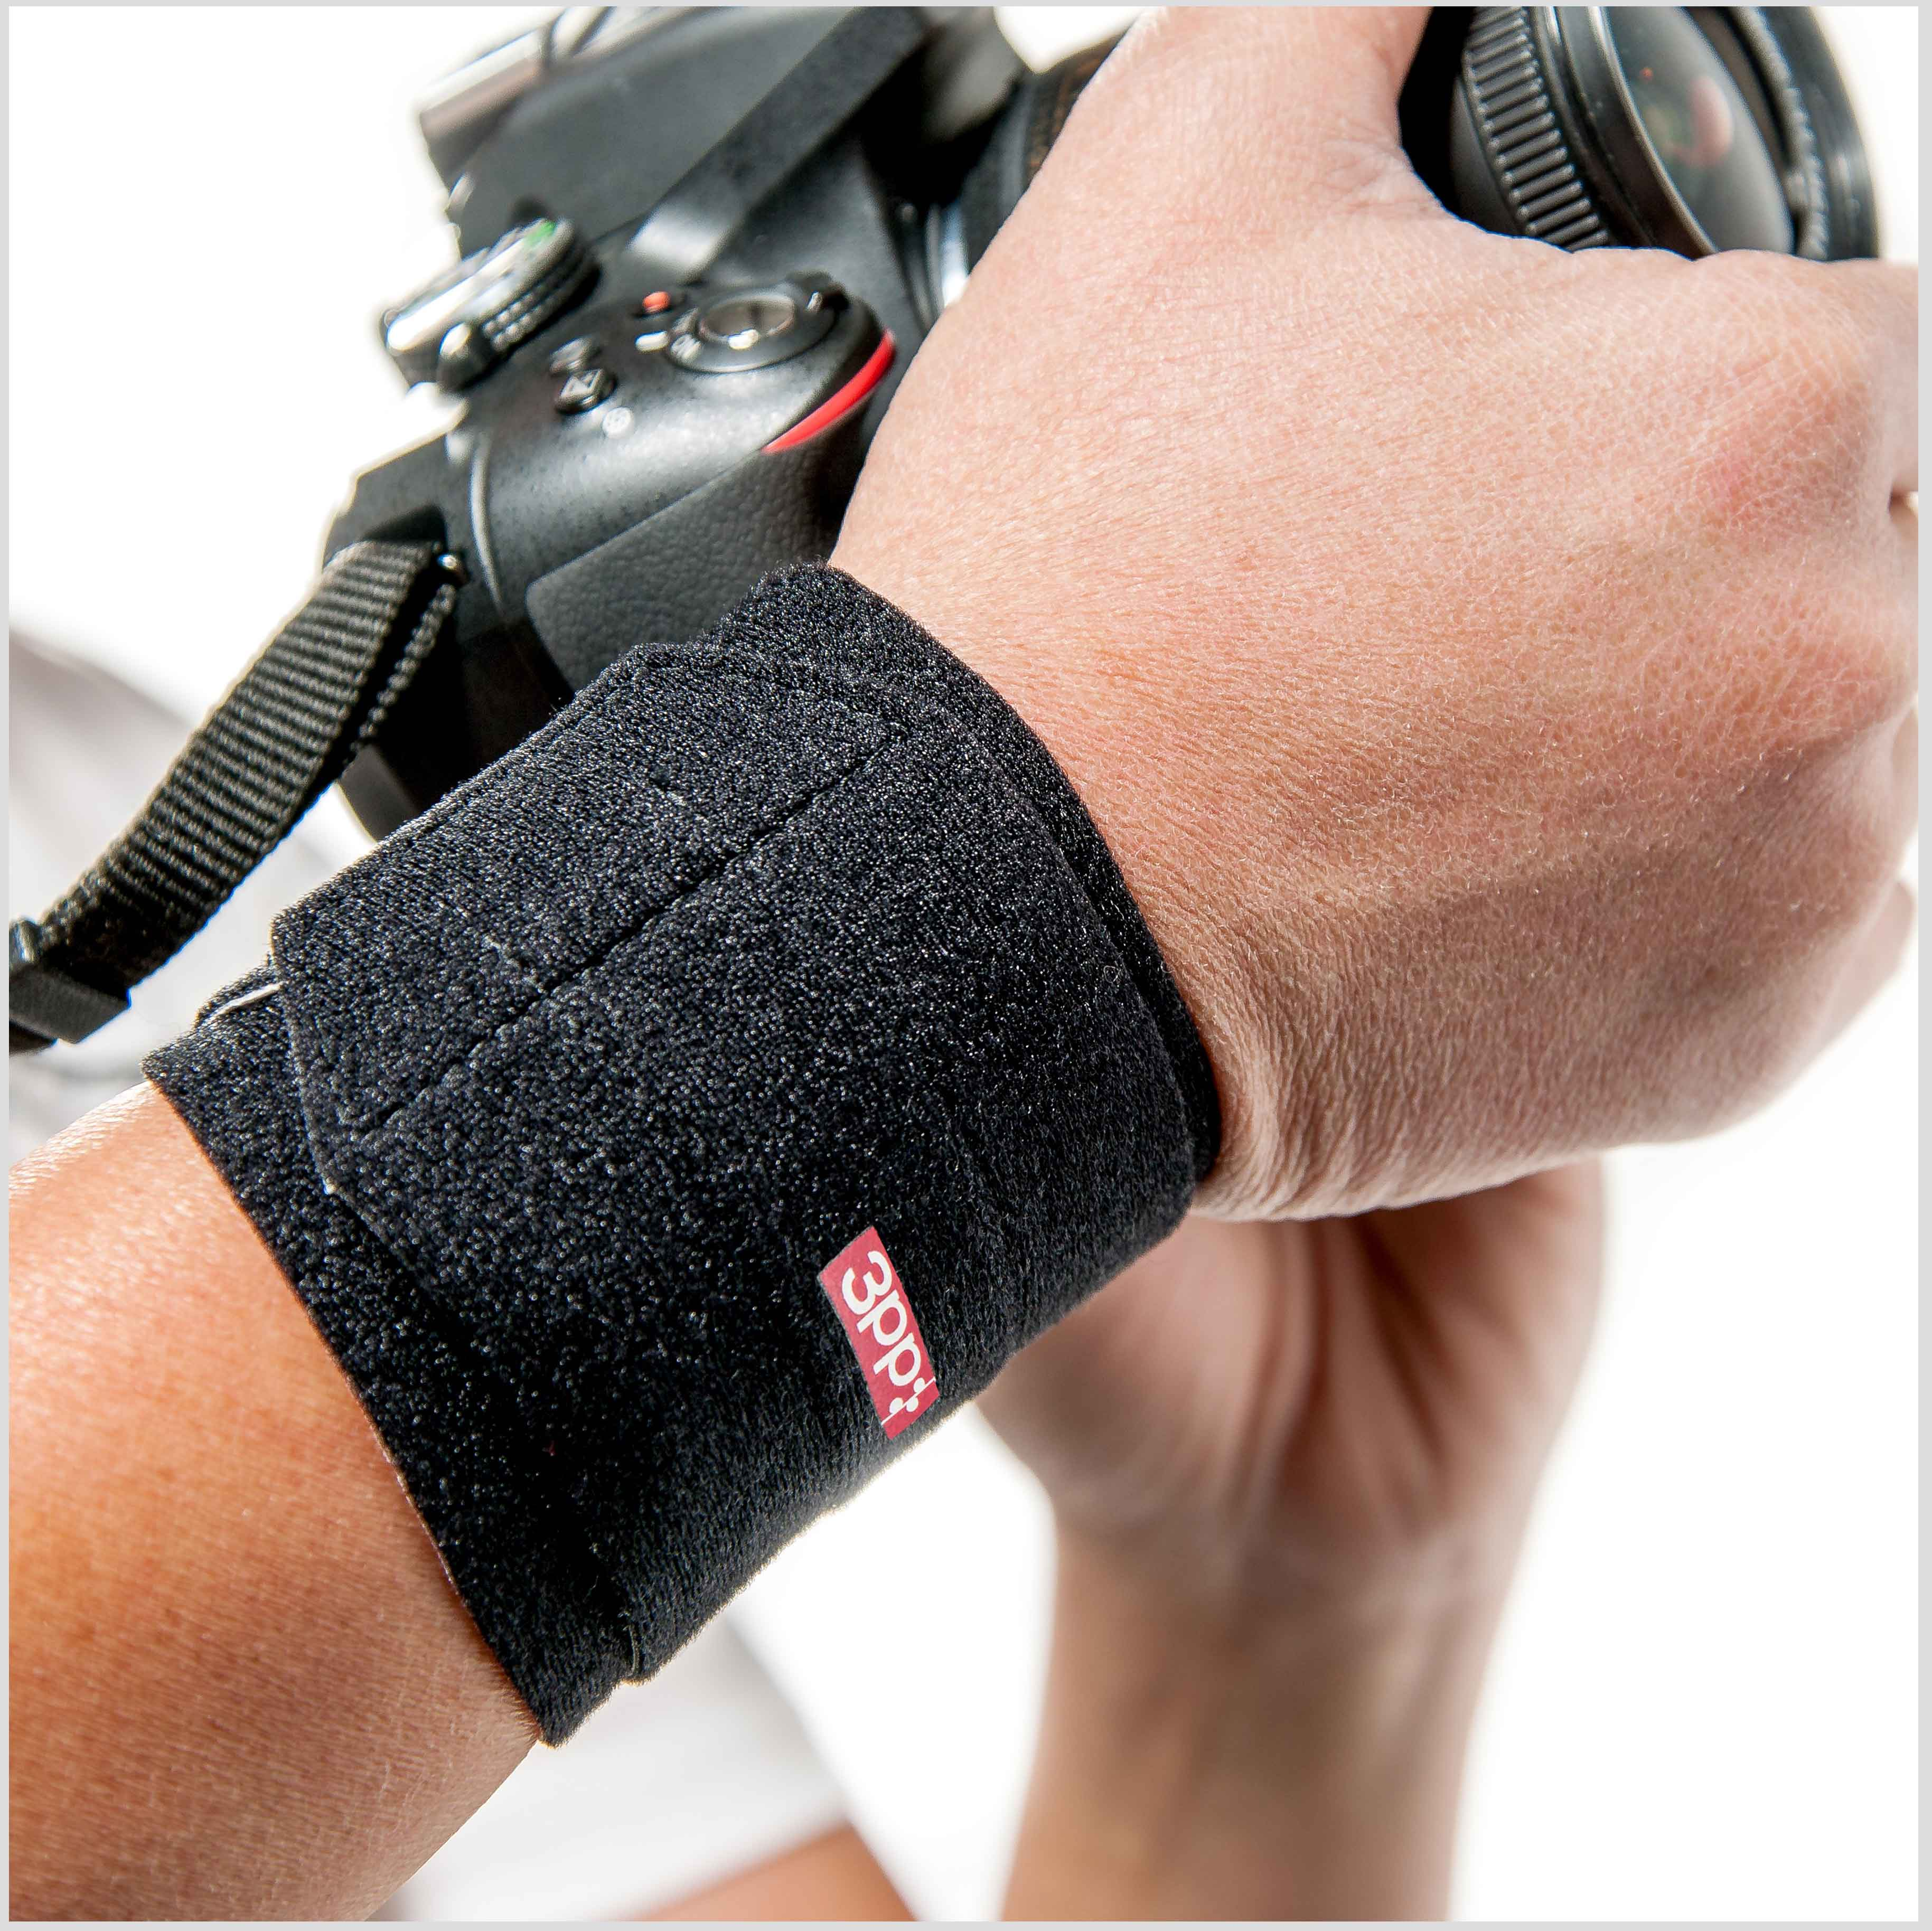 3pp Wrist POP Splint for TFCC injuries